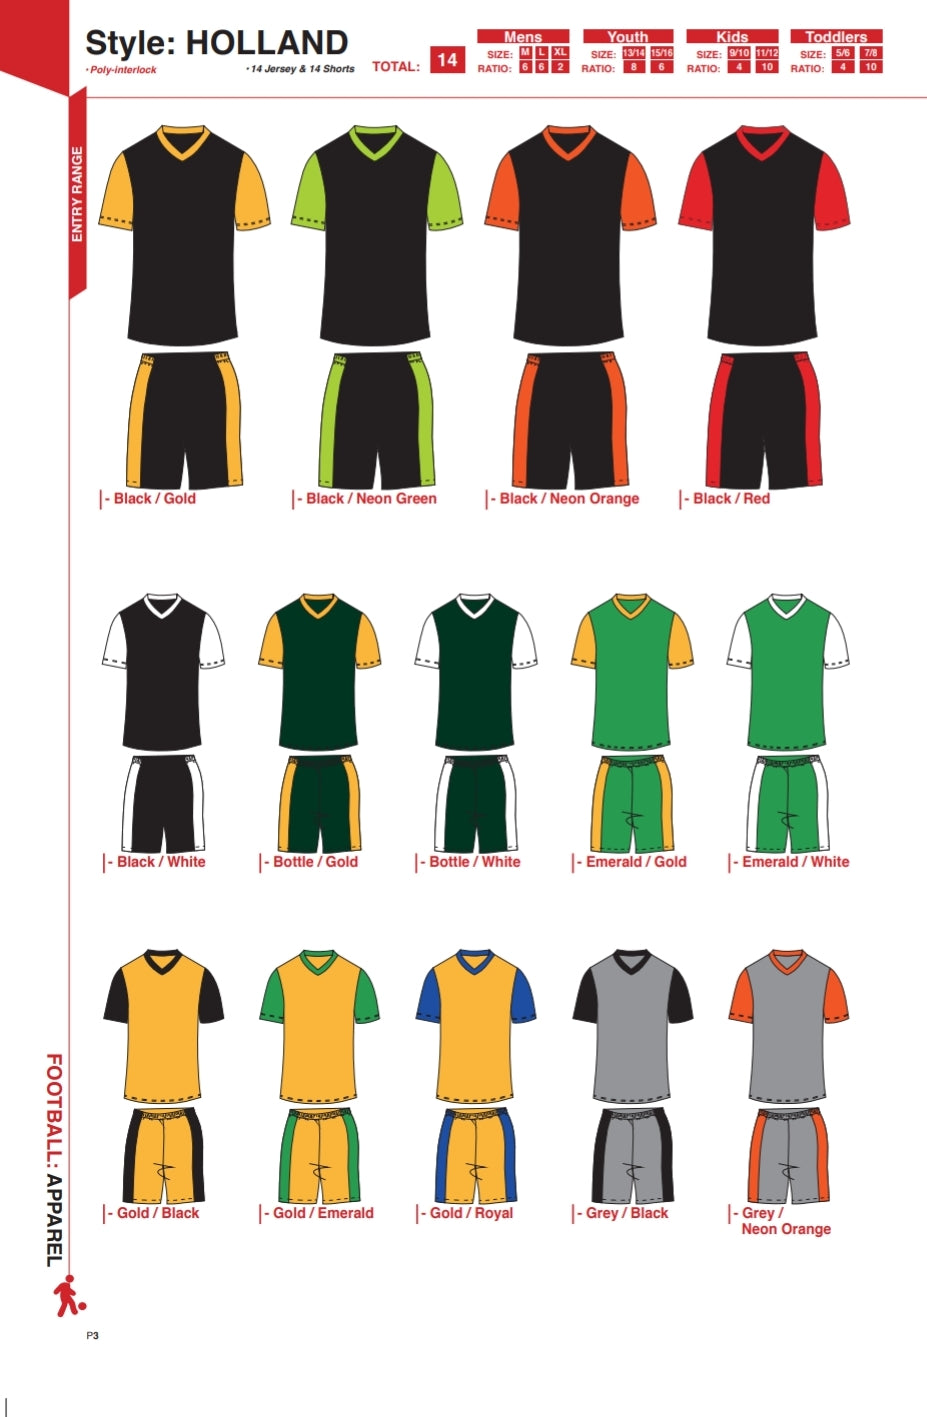 Soccer Kit Combo Basic Set - Holland Style Colour Chart A - gr8sportskits